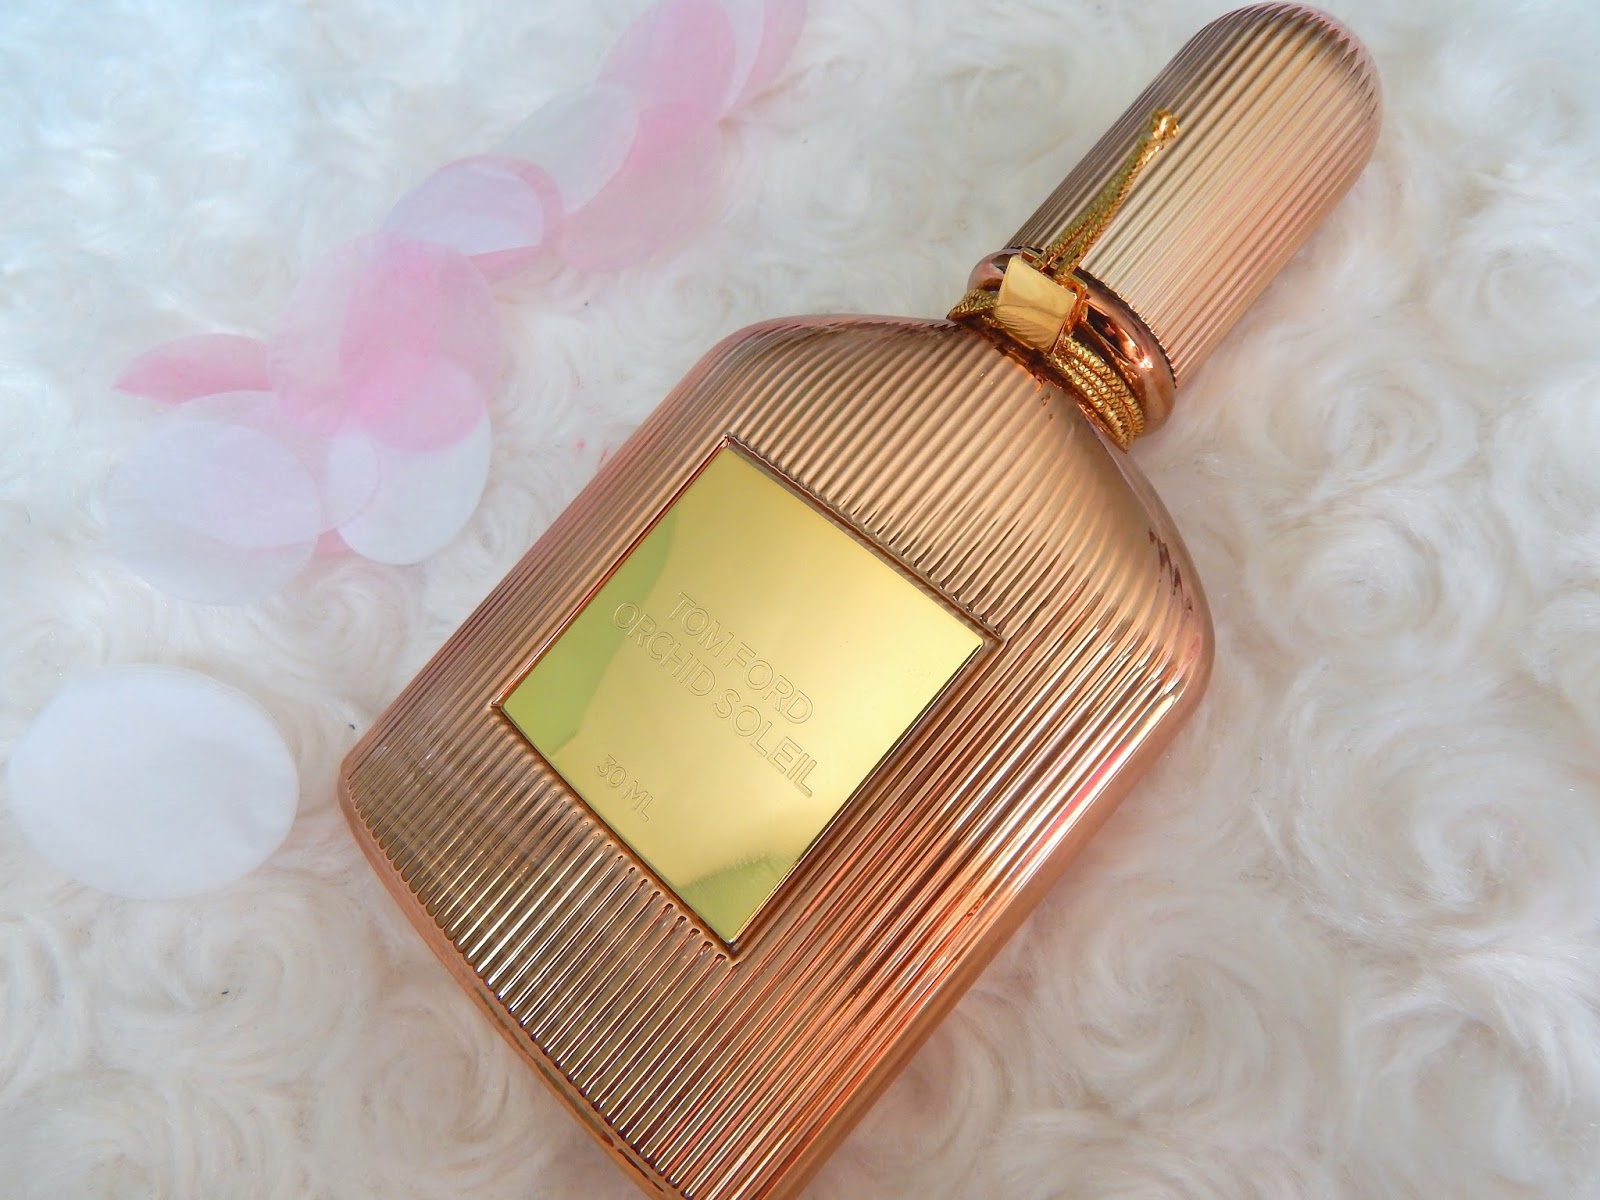 tom ford orchid soleil perfume review meganlucyy. Black Bedroom Furniture Sets. Home Design Ideas